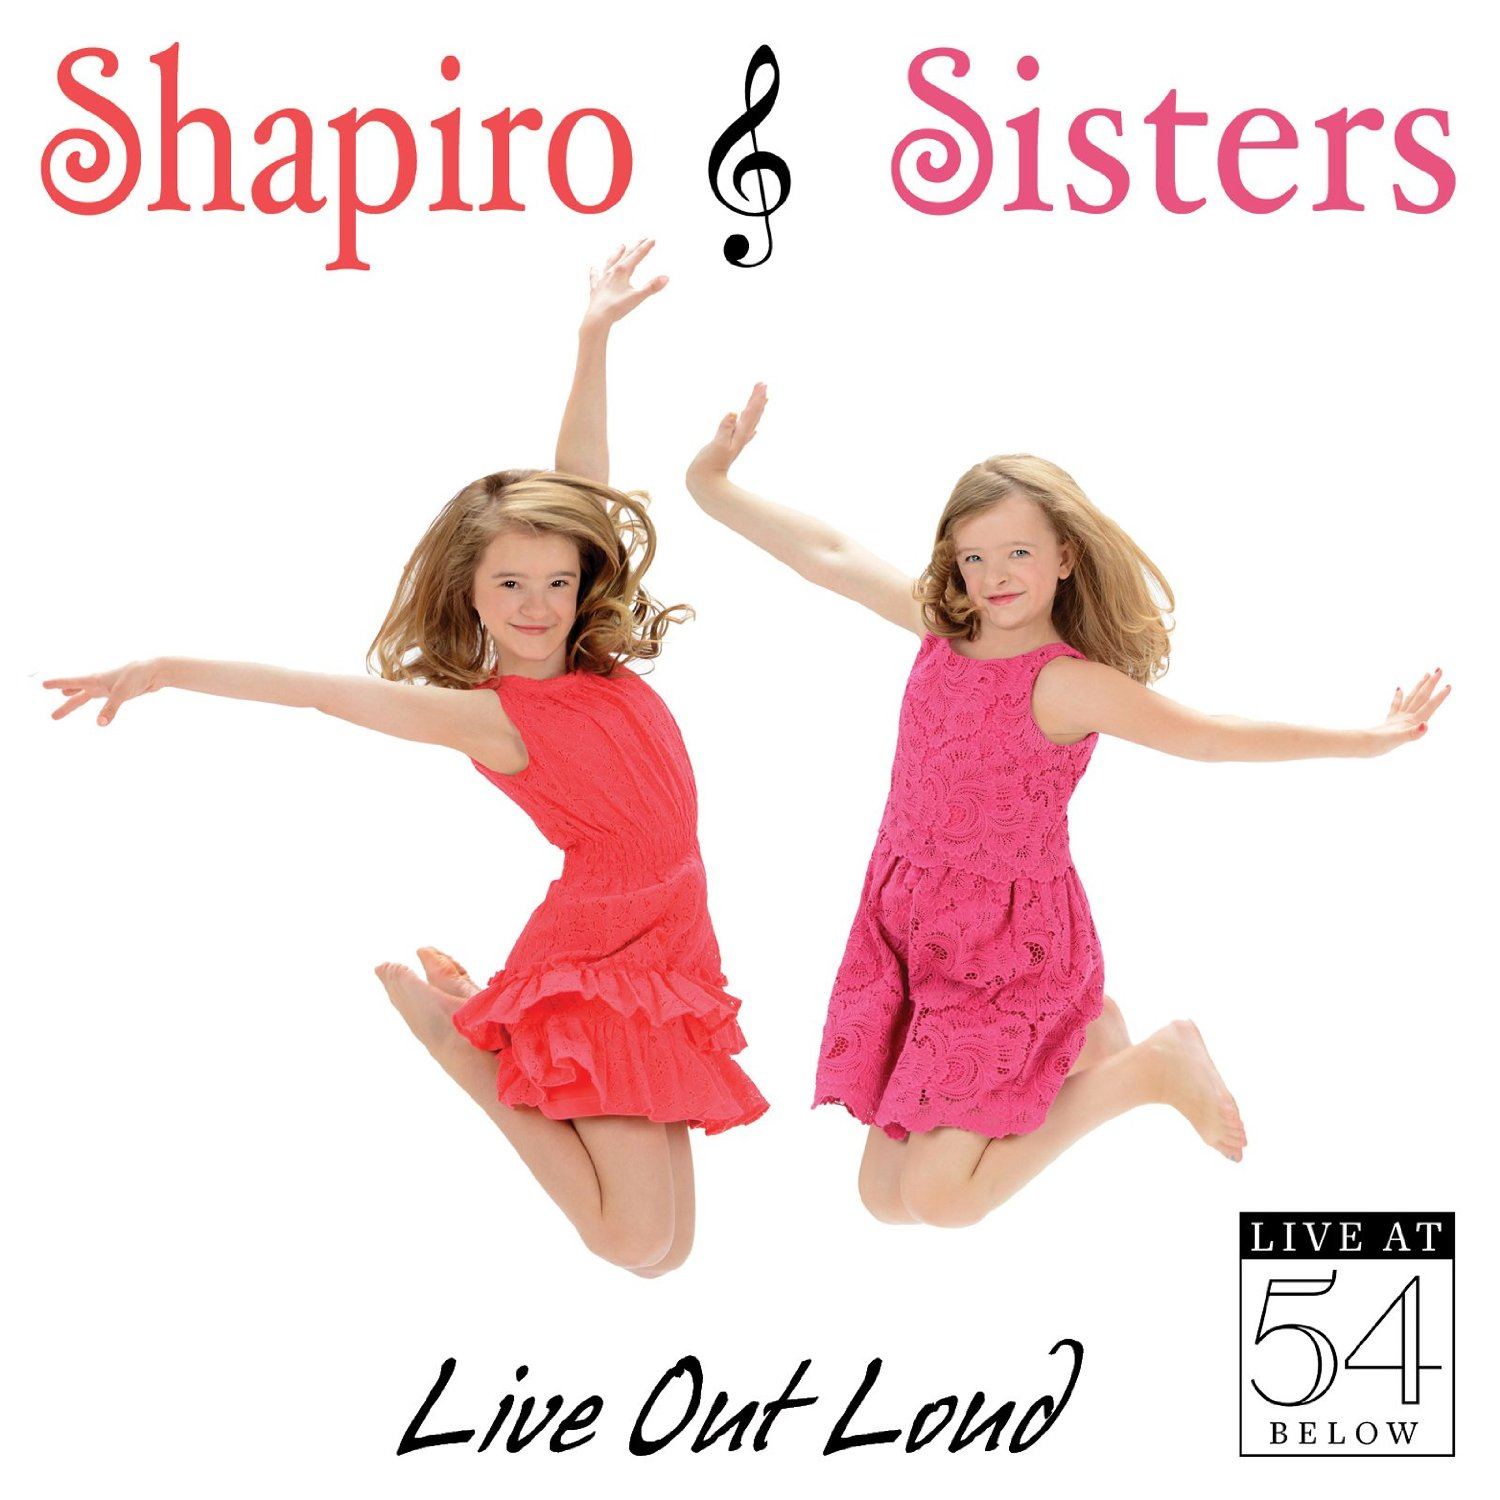 Live Out Loud - Live at 54 BELOW -Shapiro Sisters